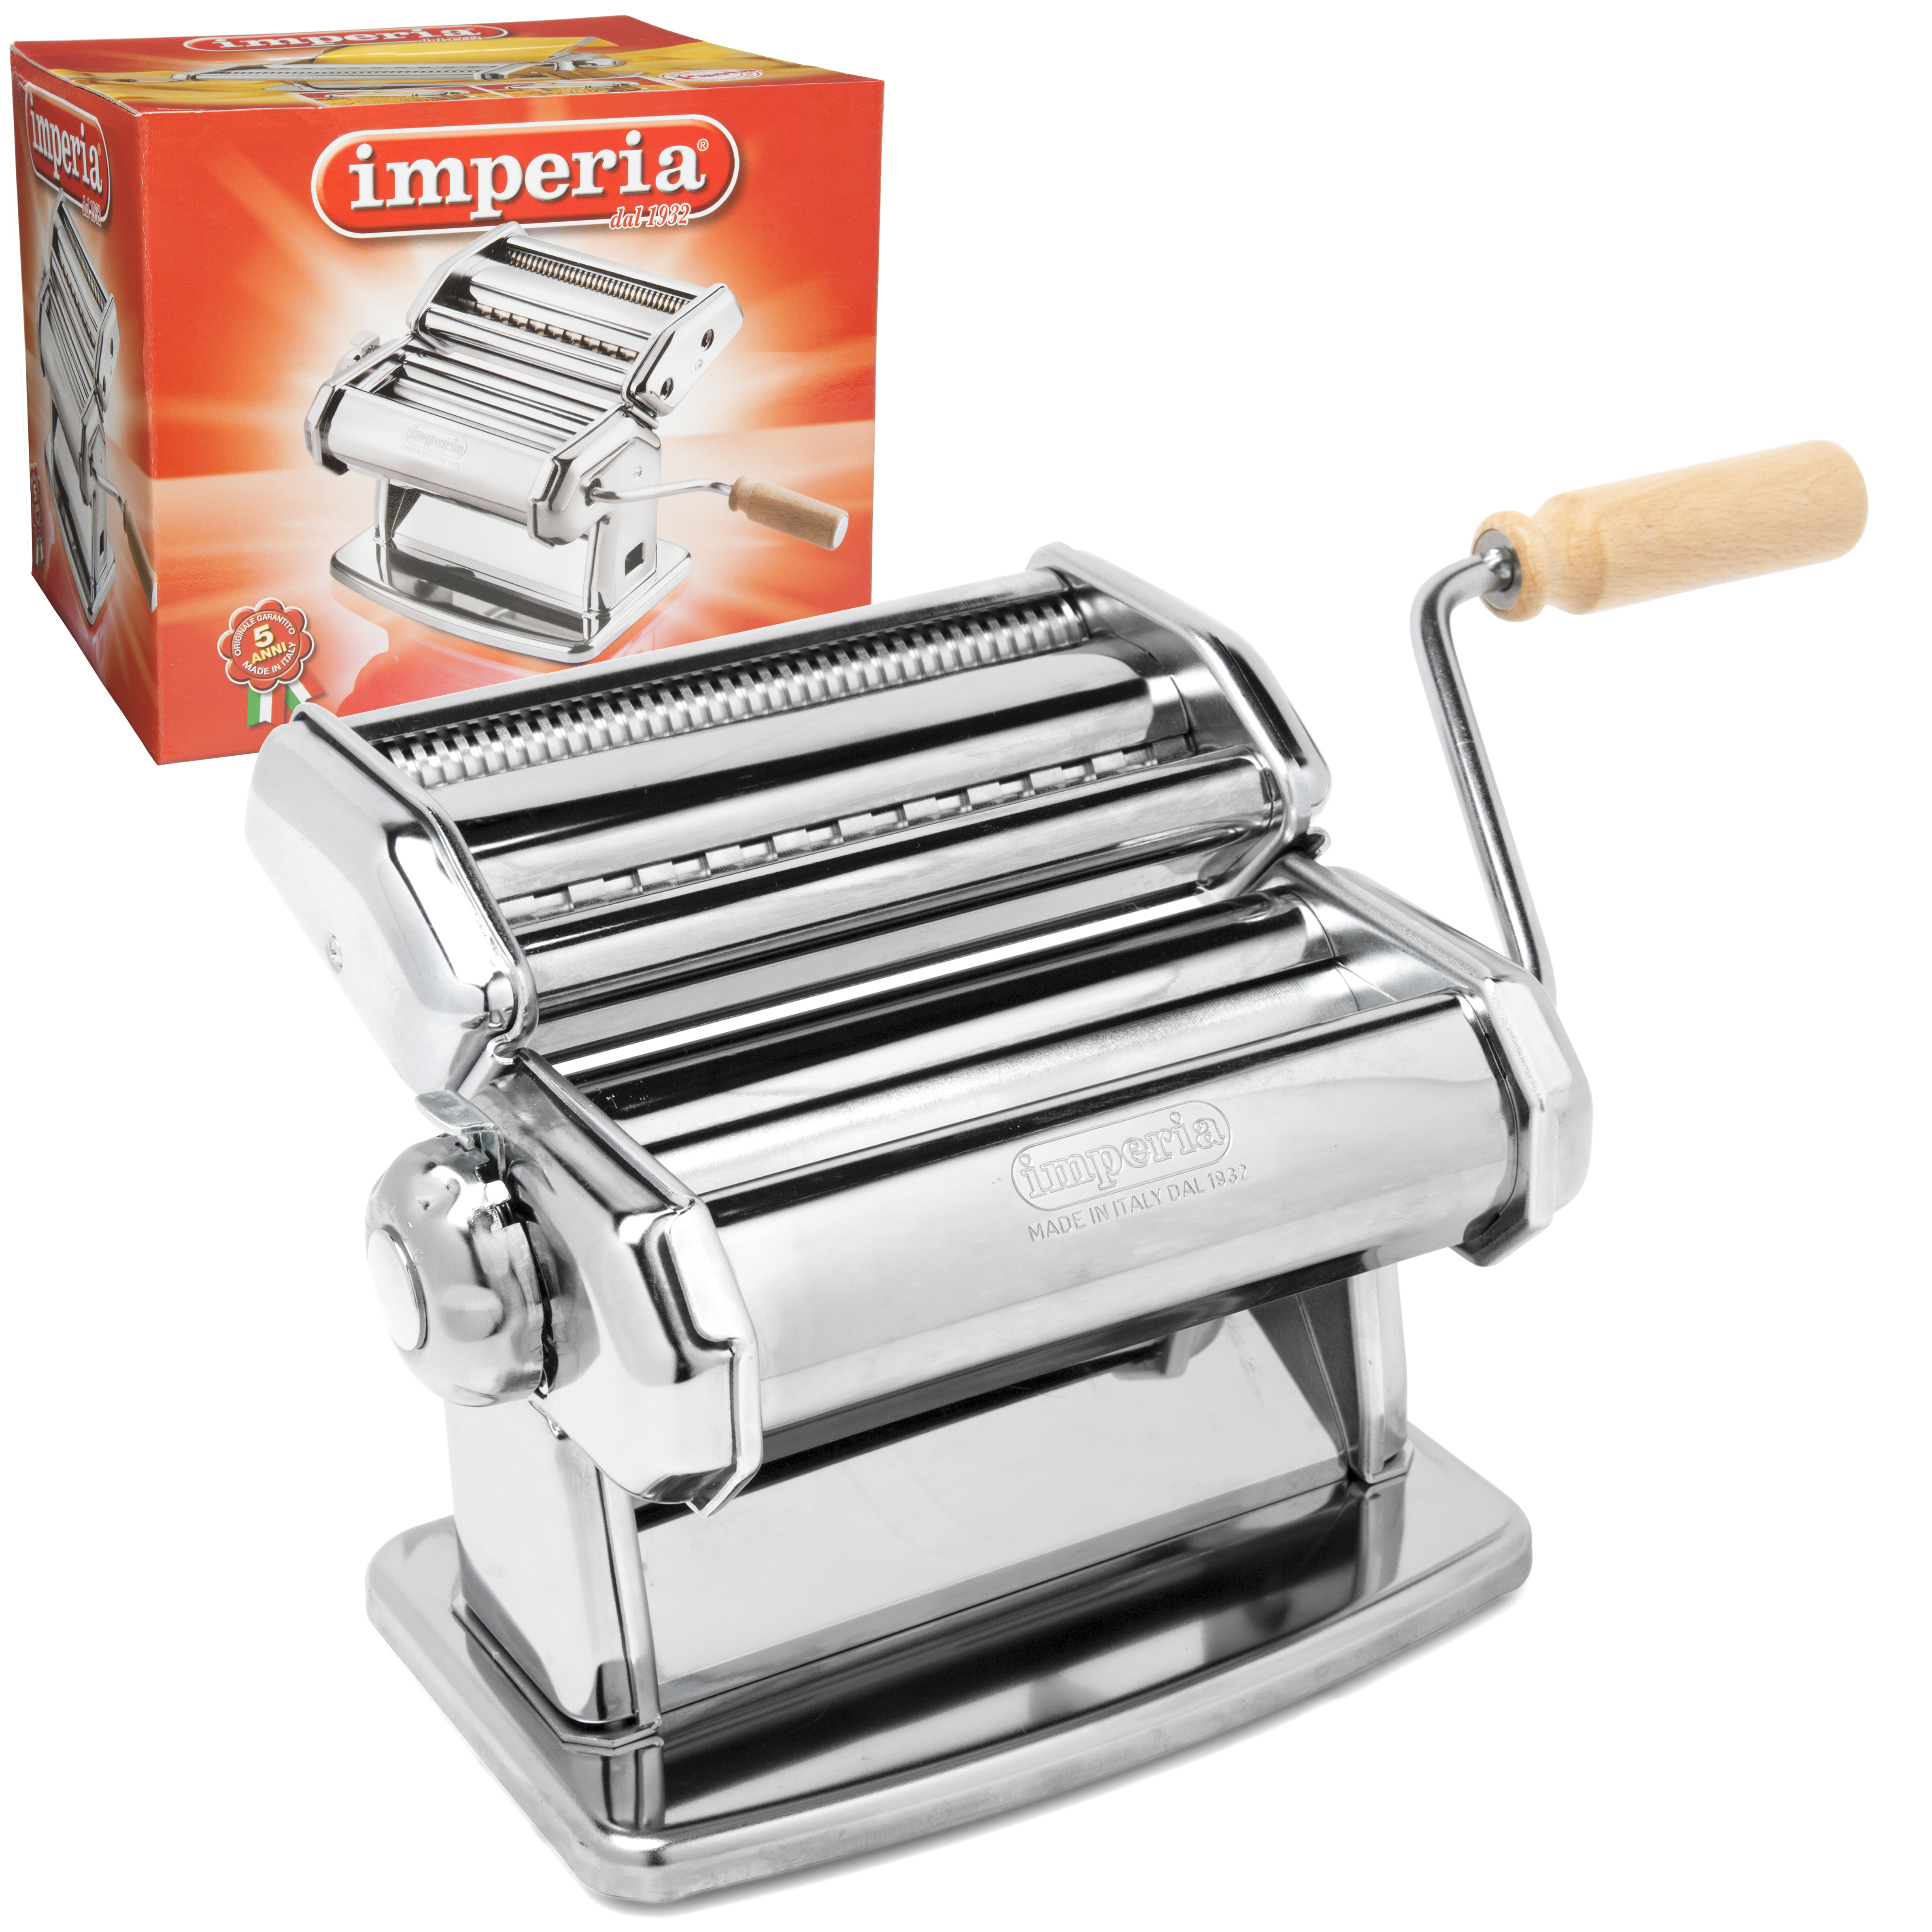 imperia pasta machine from cucinapro inspiring chefs everywhere. Black Bedroom Furniture Sets. Home Design Ideas